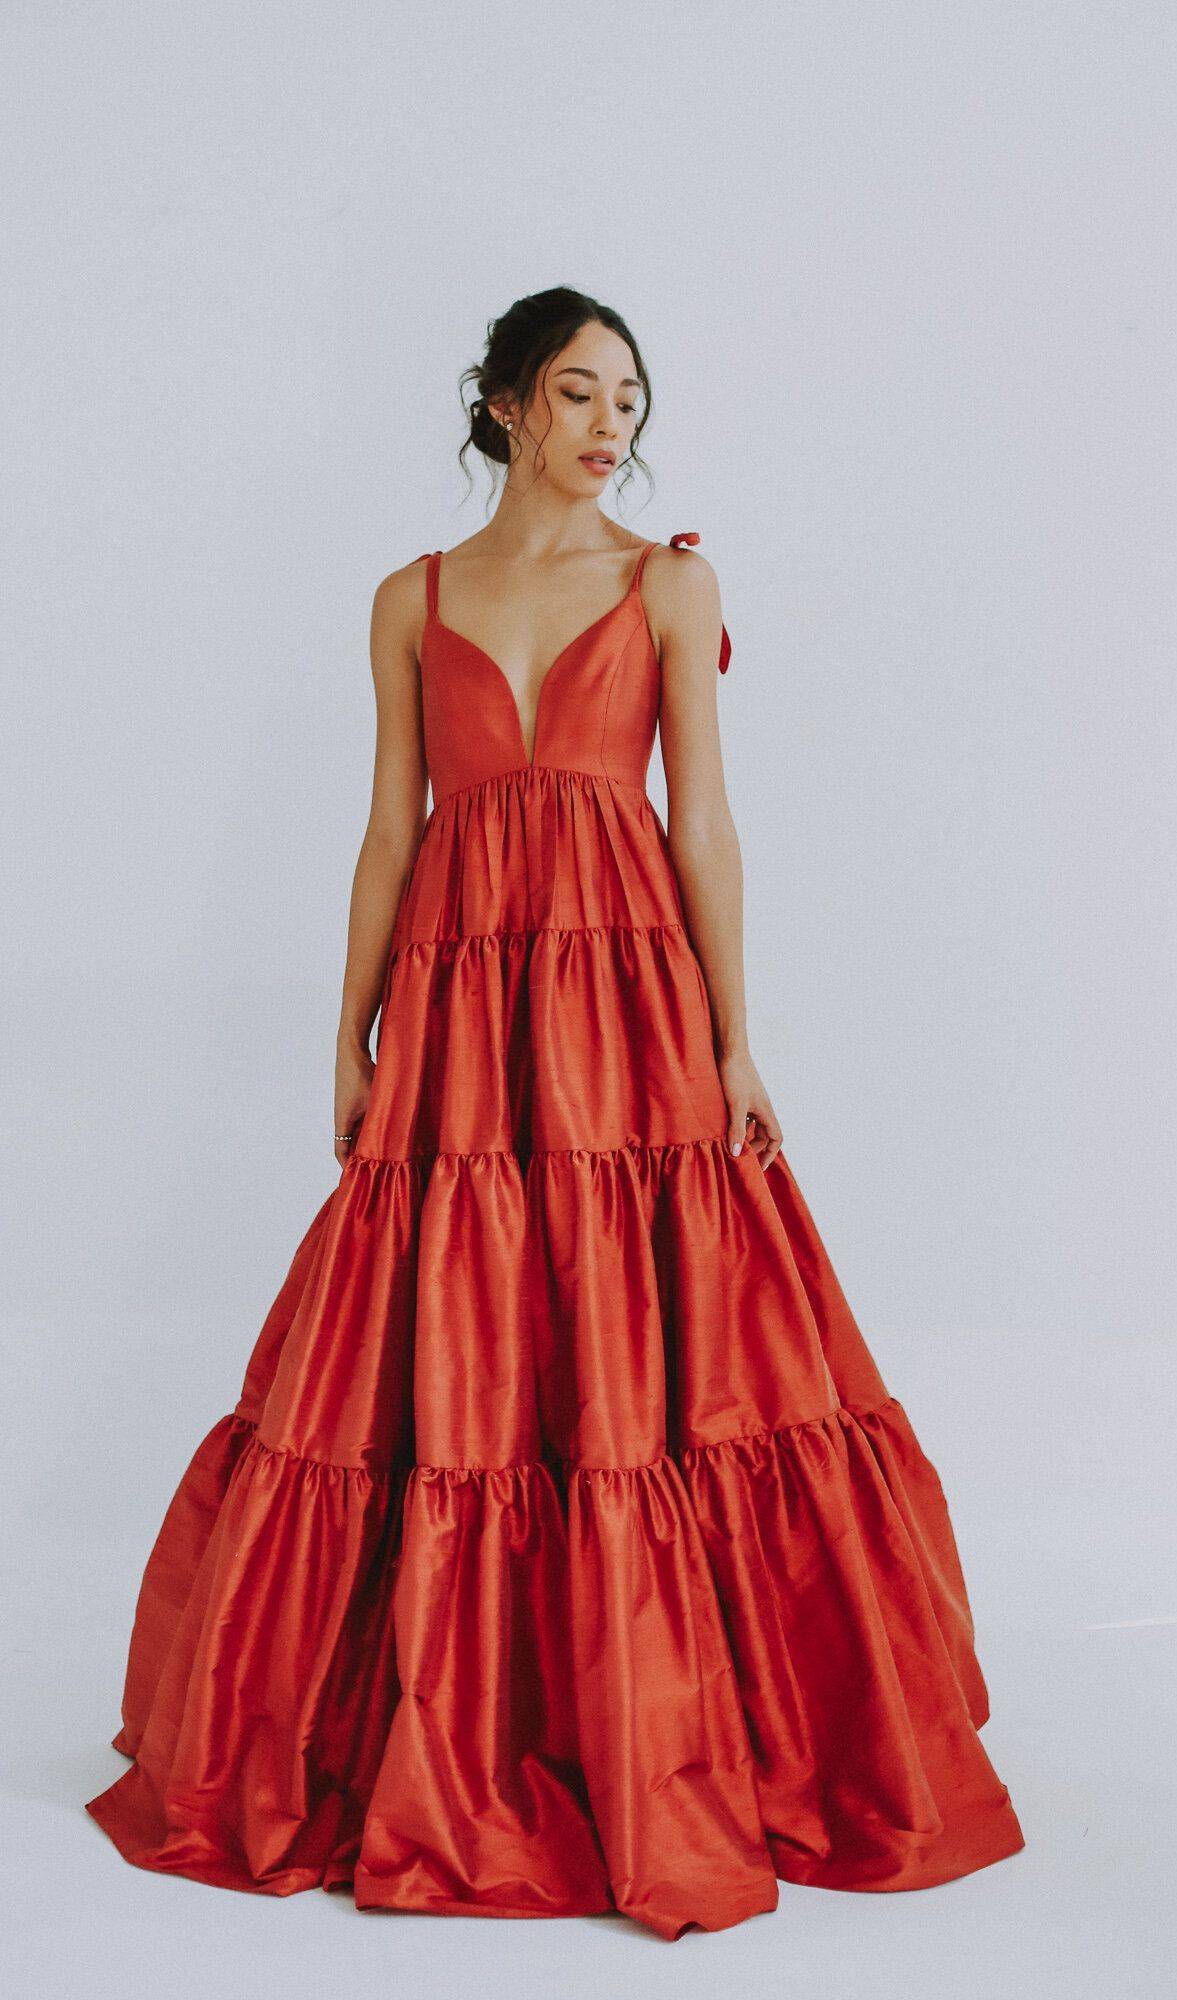 35 Colorful Wedding Dresses You Can Buy Right Now in 2020